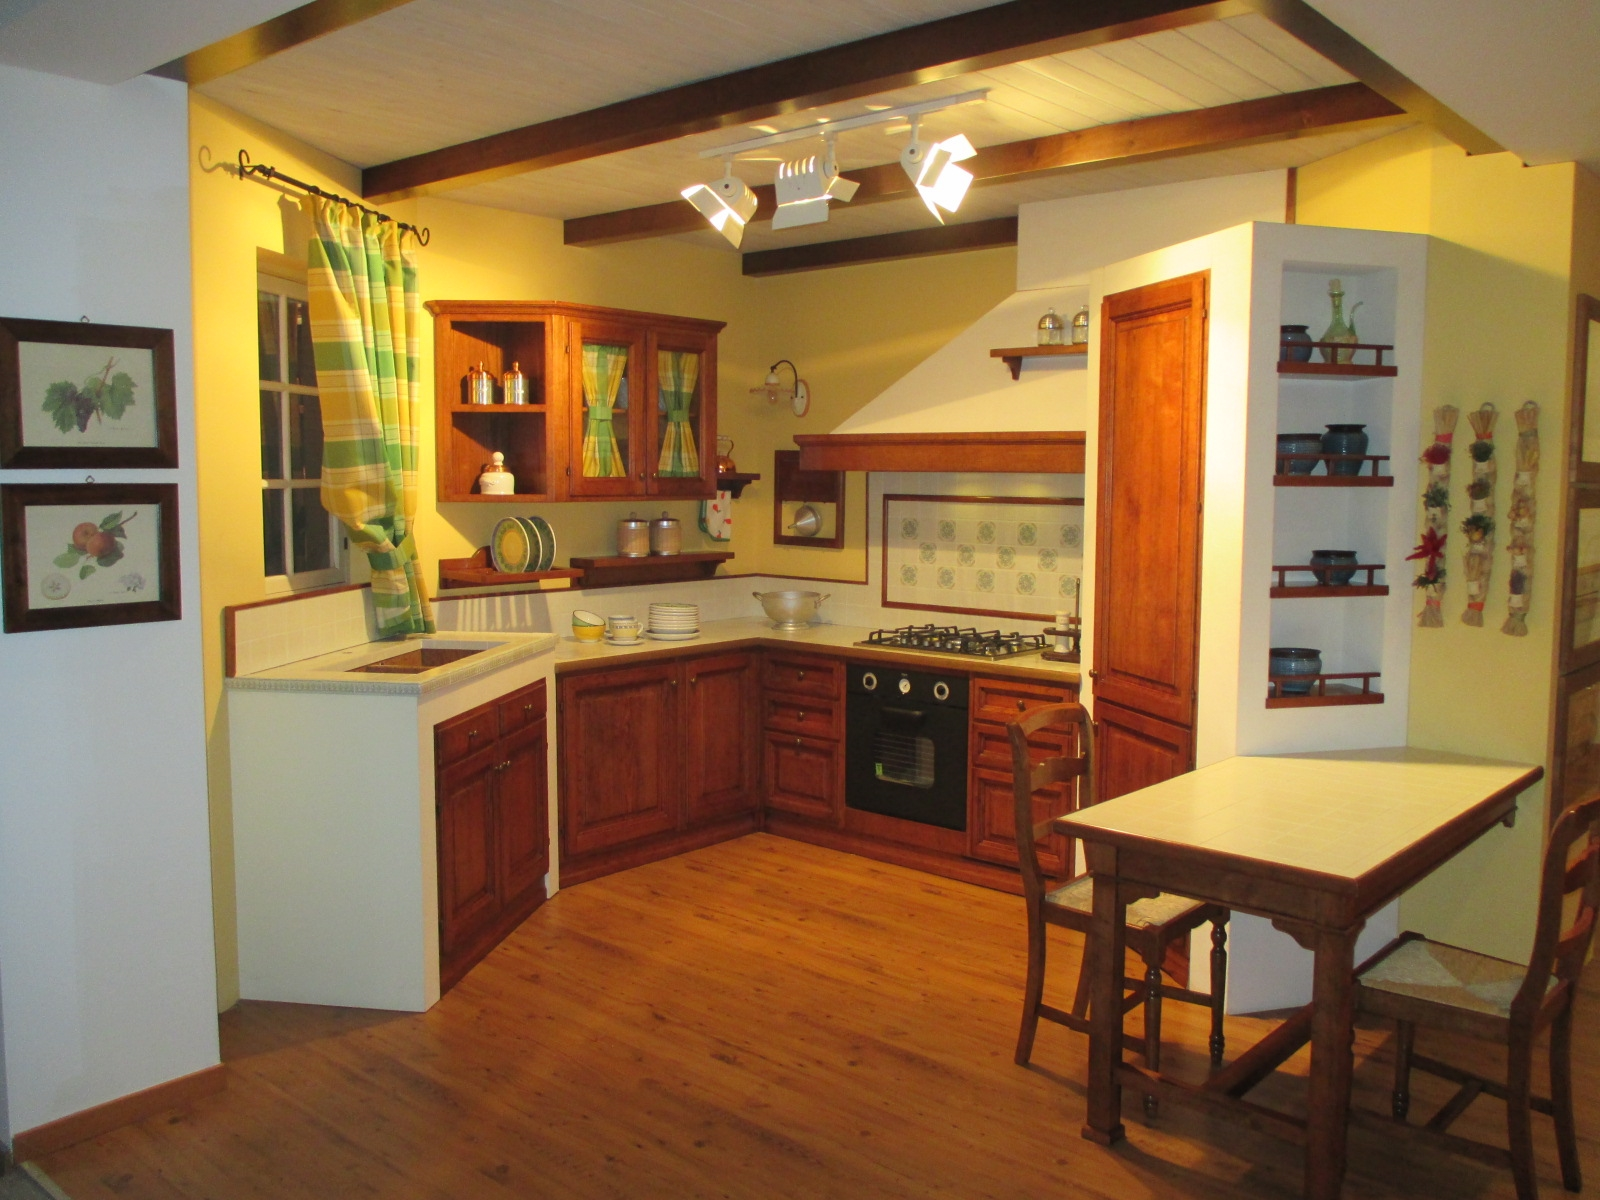 Mobili cucina country perfect cucina country with mobili cucina country perfect o o o with - Mobili cucina country ...